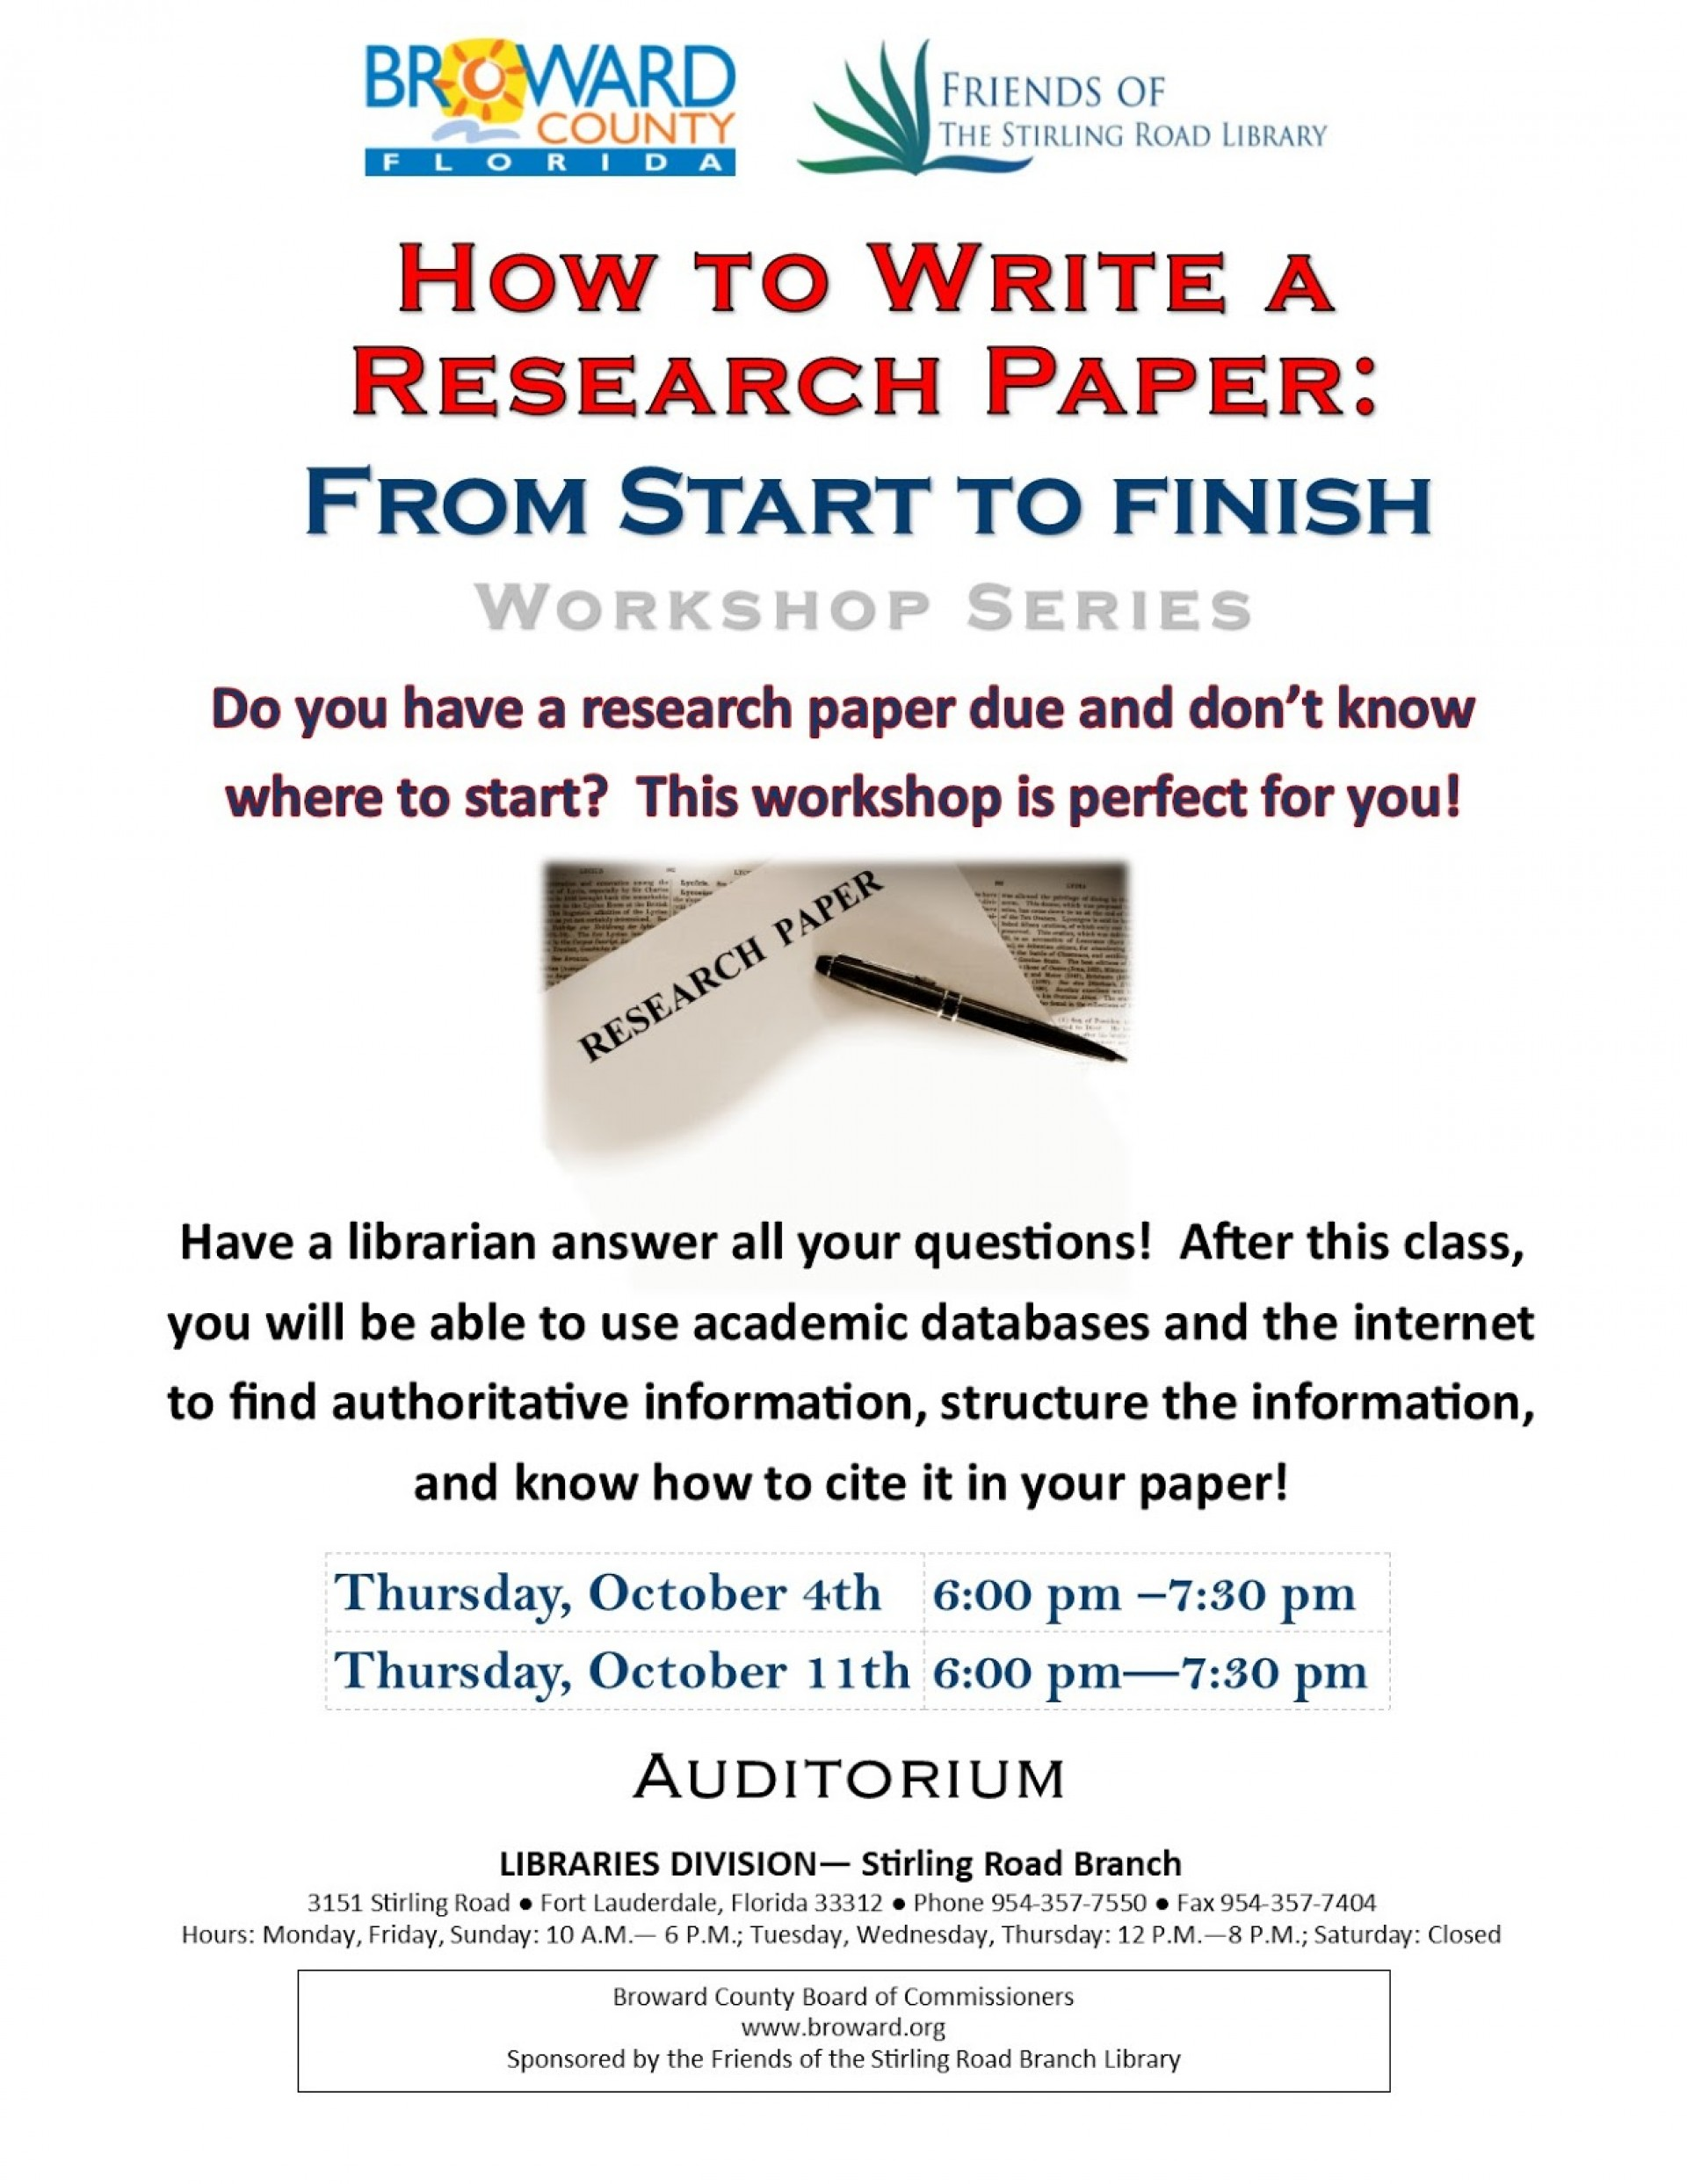 014 How To Write Research Paper Frightening A Thesis Driven Proposal Apa 1920